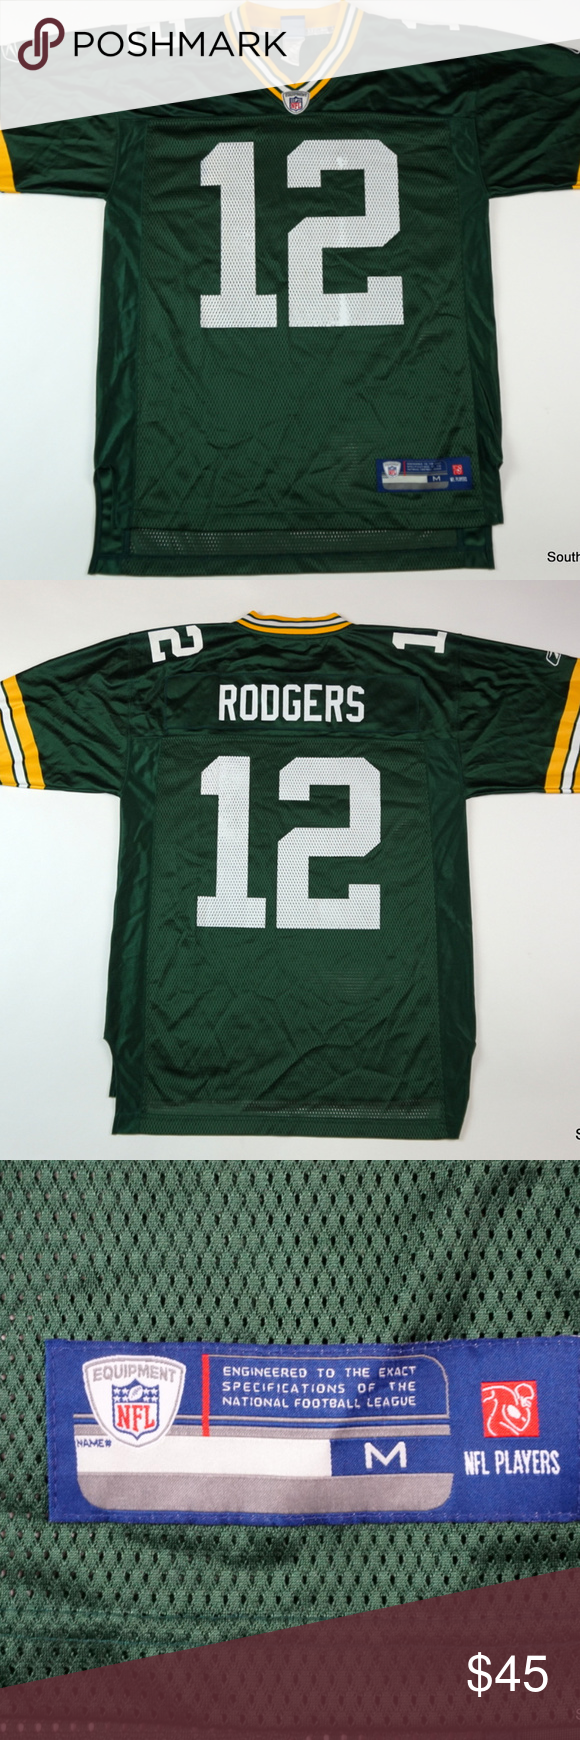 Aaron Rodgers Green Bay Packers Jersey Sz Medium Jersey Has Been Lightly Worn And Is In Good Shape T Aaron Rodgers Green Bay Packers Jerseys Green Bay Packers